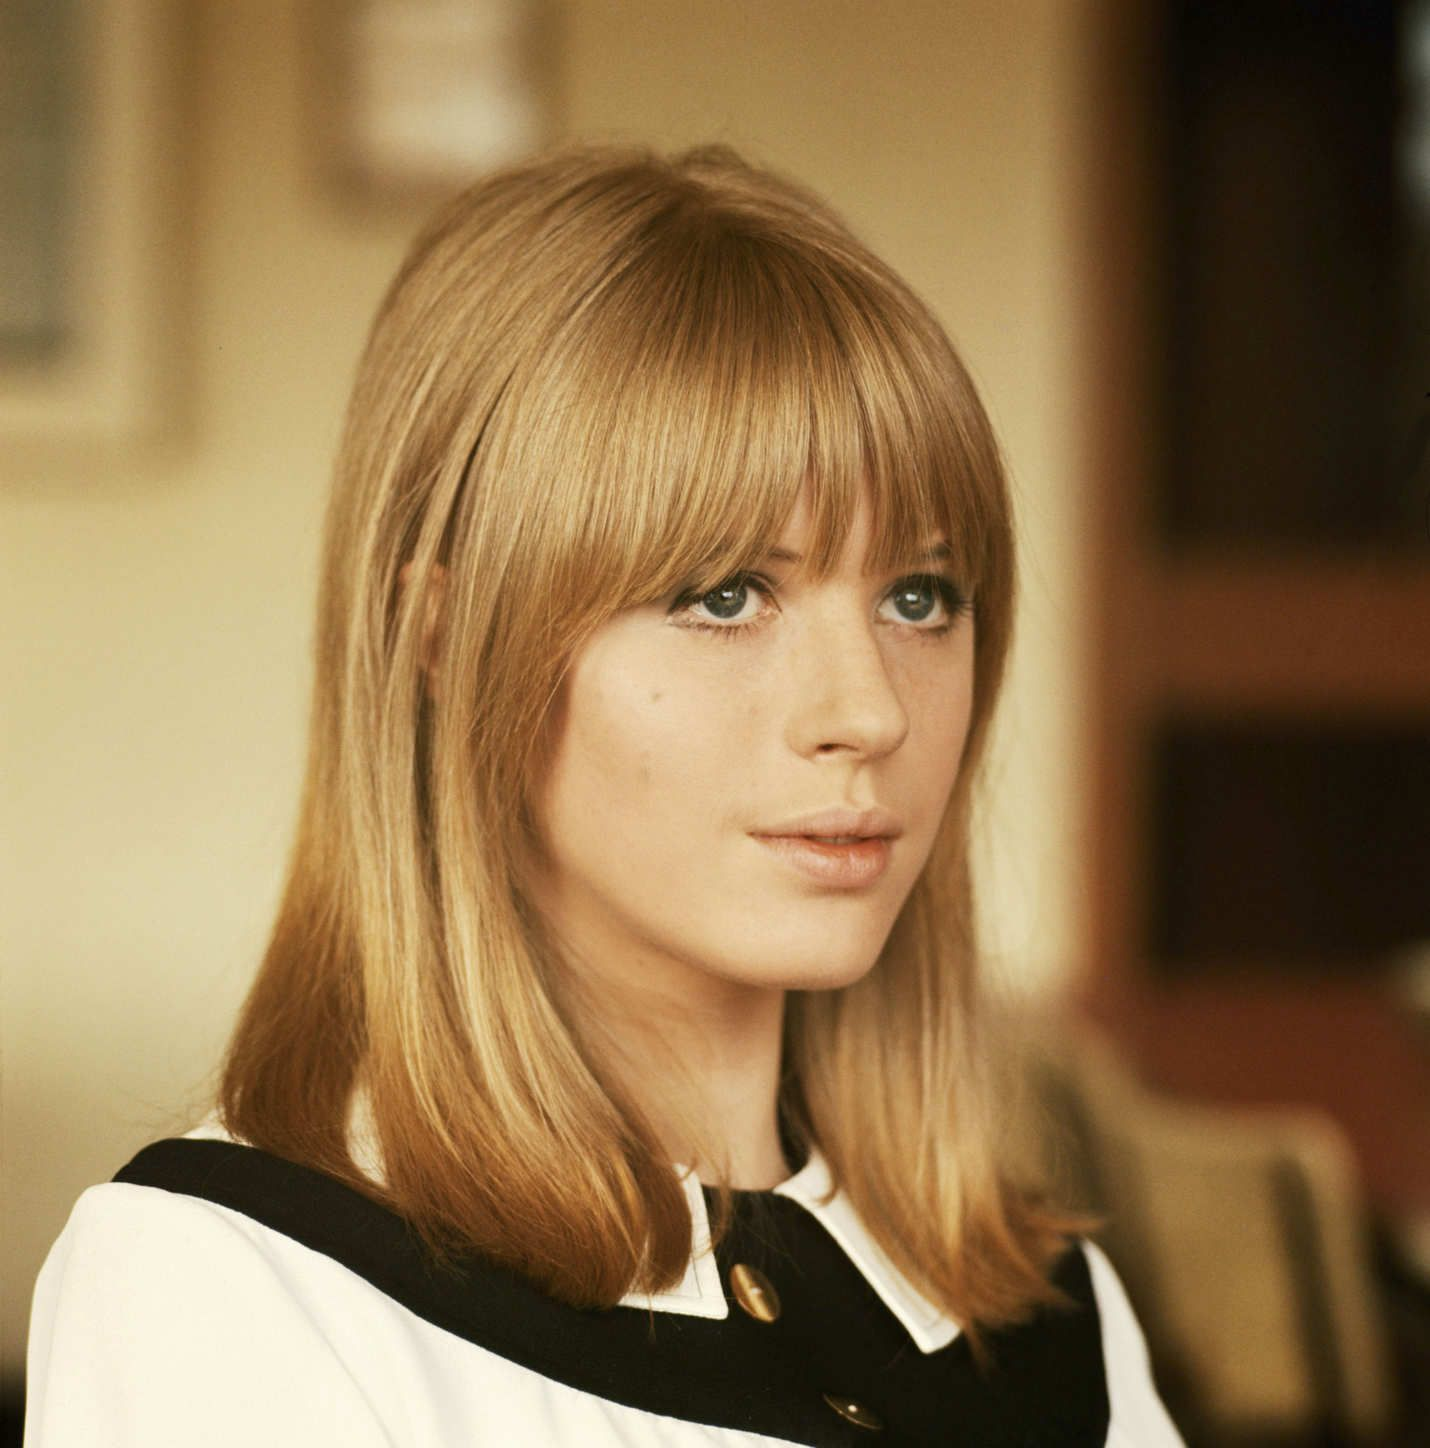 The 60s and 70s were the golden age of cool girl bangs and none